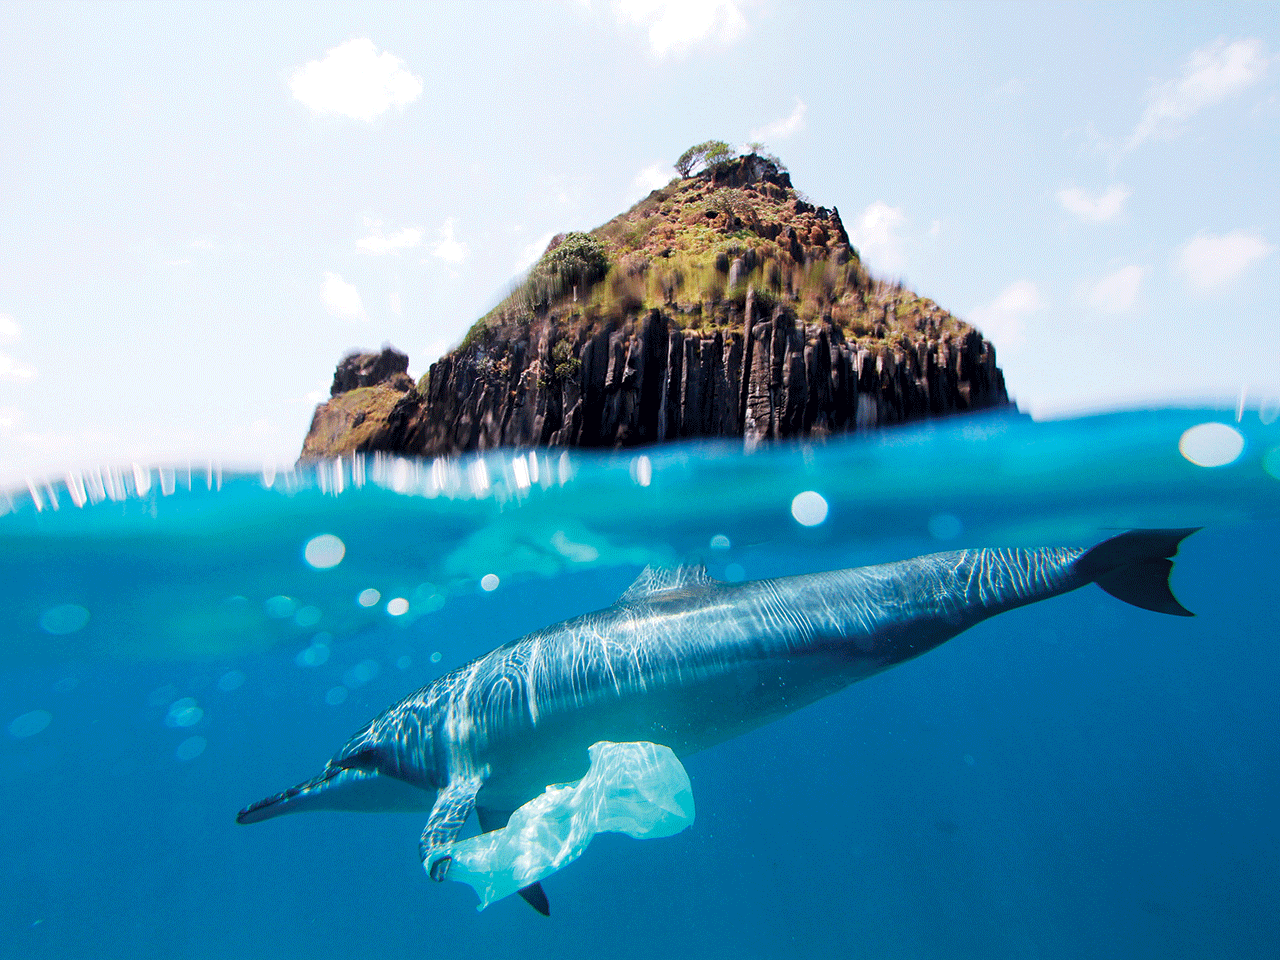 A DOLPHIN IS ENTANGLED WITH A PLASTIC BAG OFF THE COAST OF BRAZIL.